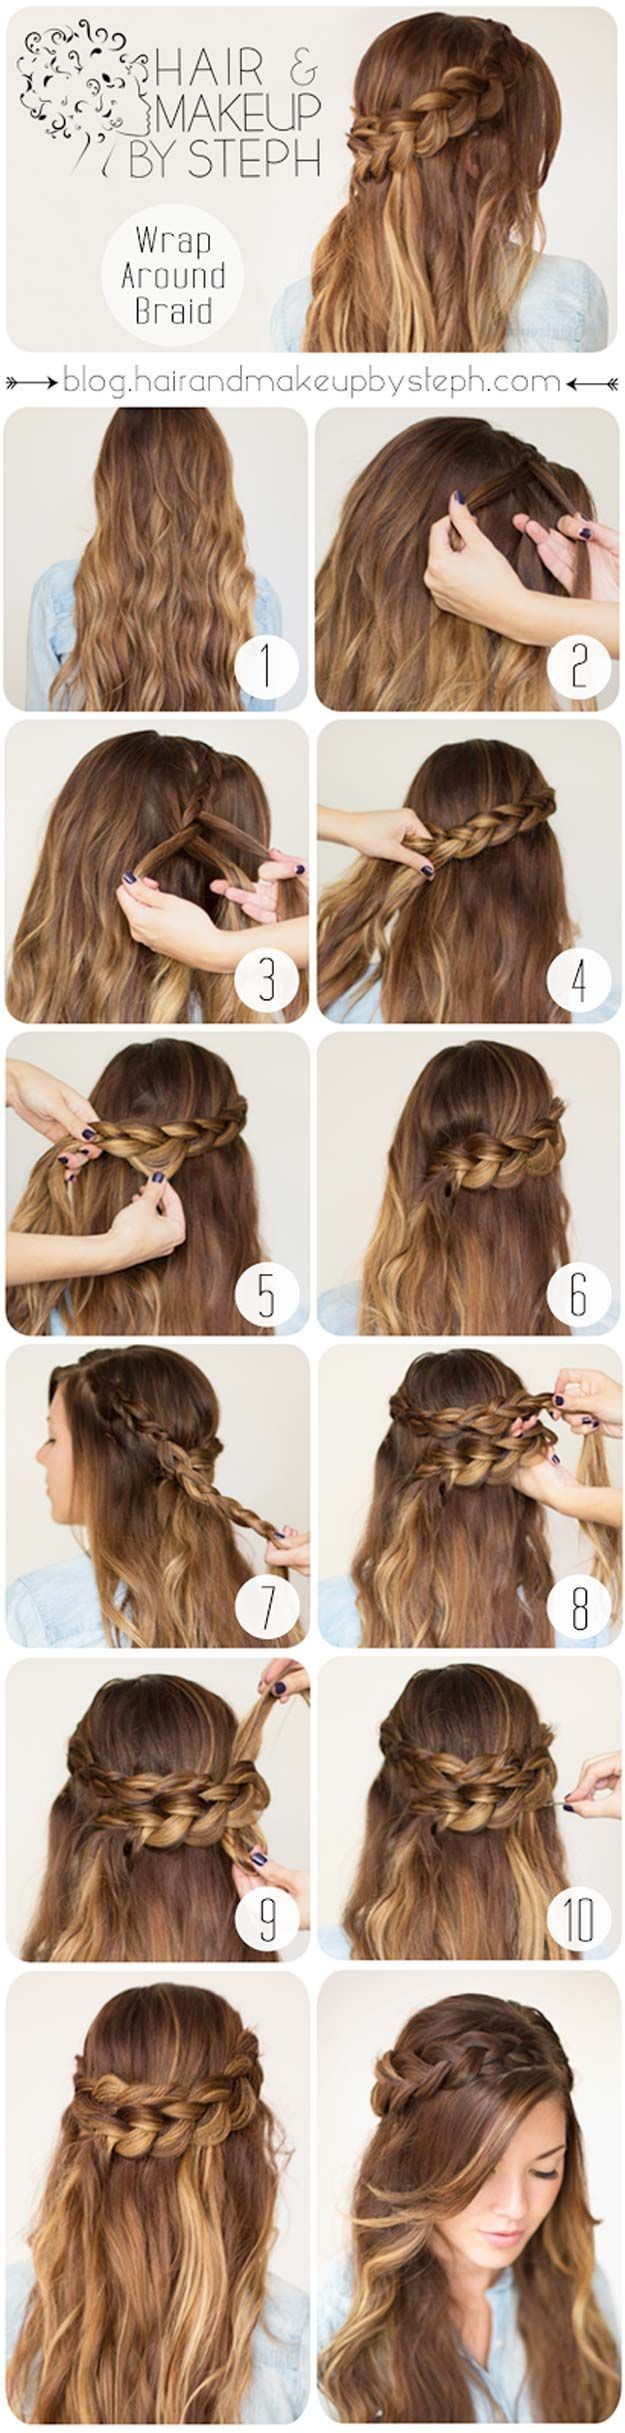 easy hairstyles for work hair style pinterest shoulder